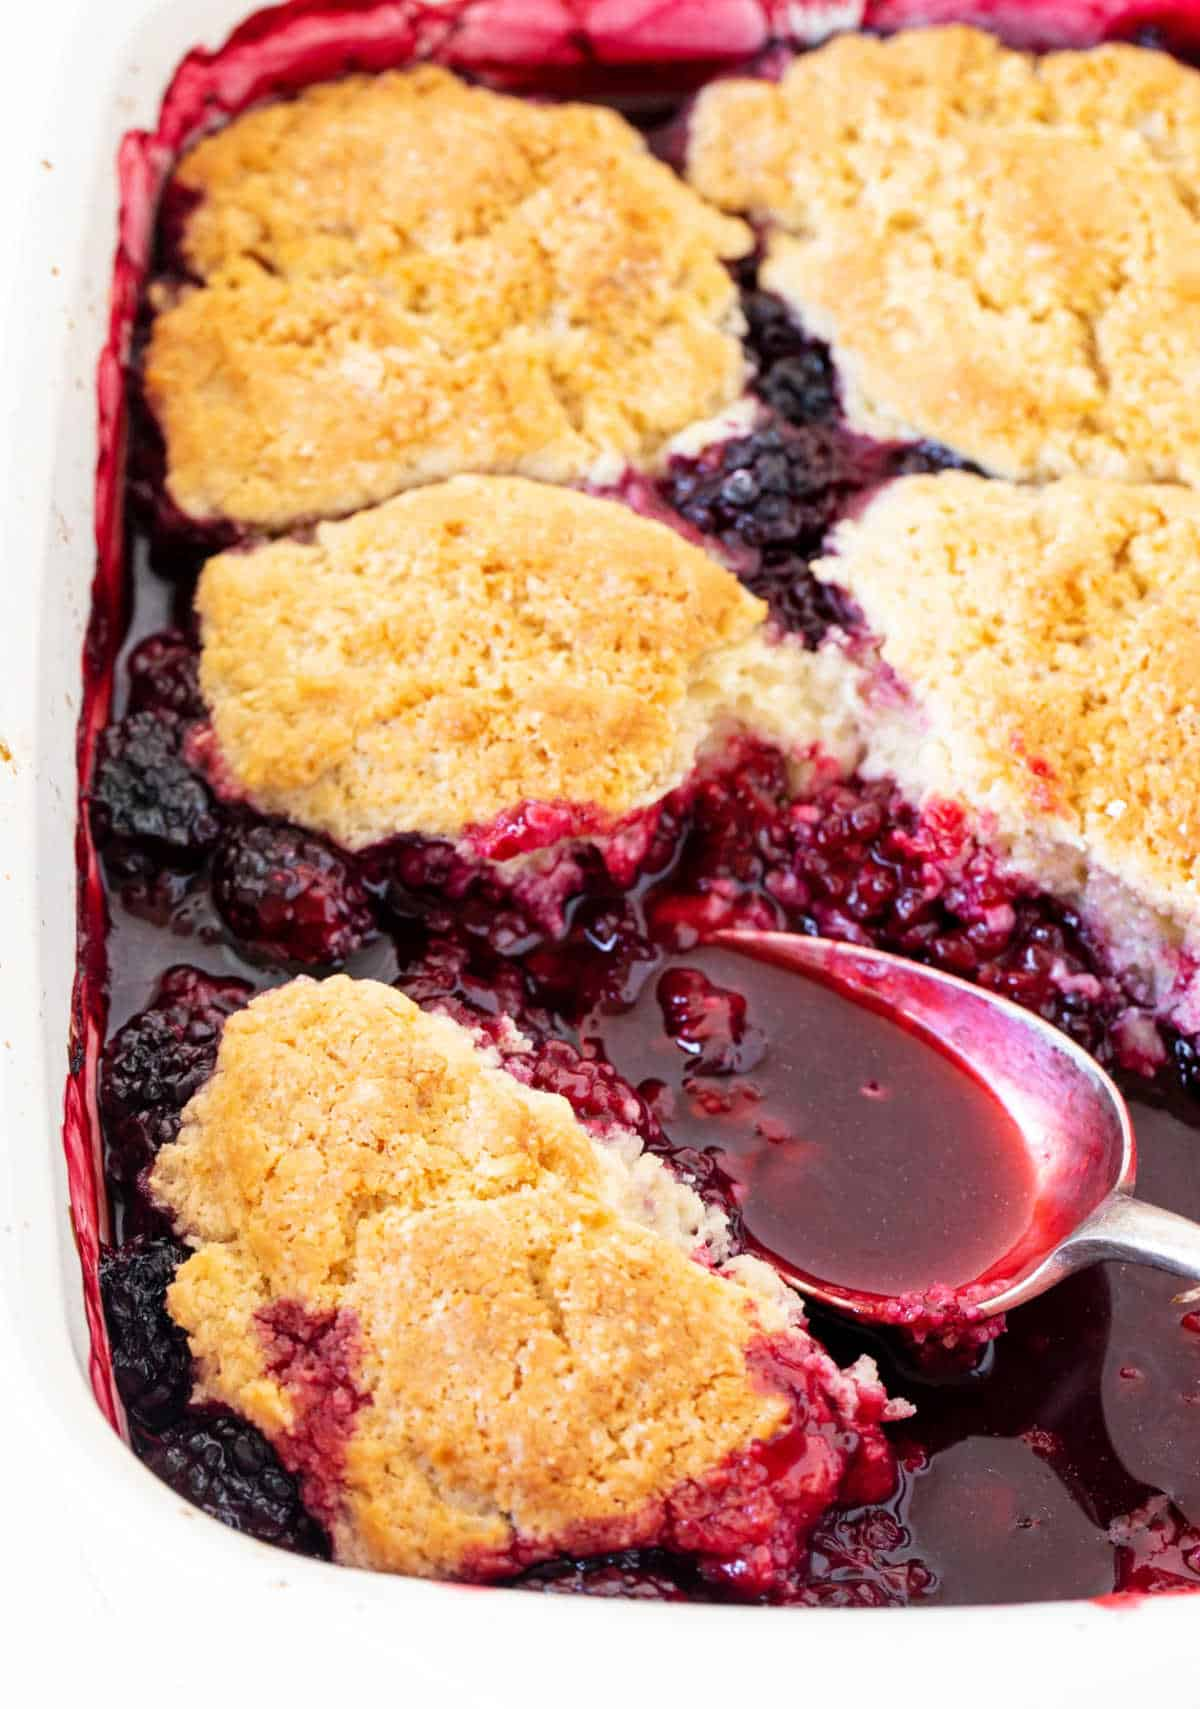 Baked blackberry cobbler with silver spoon inside